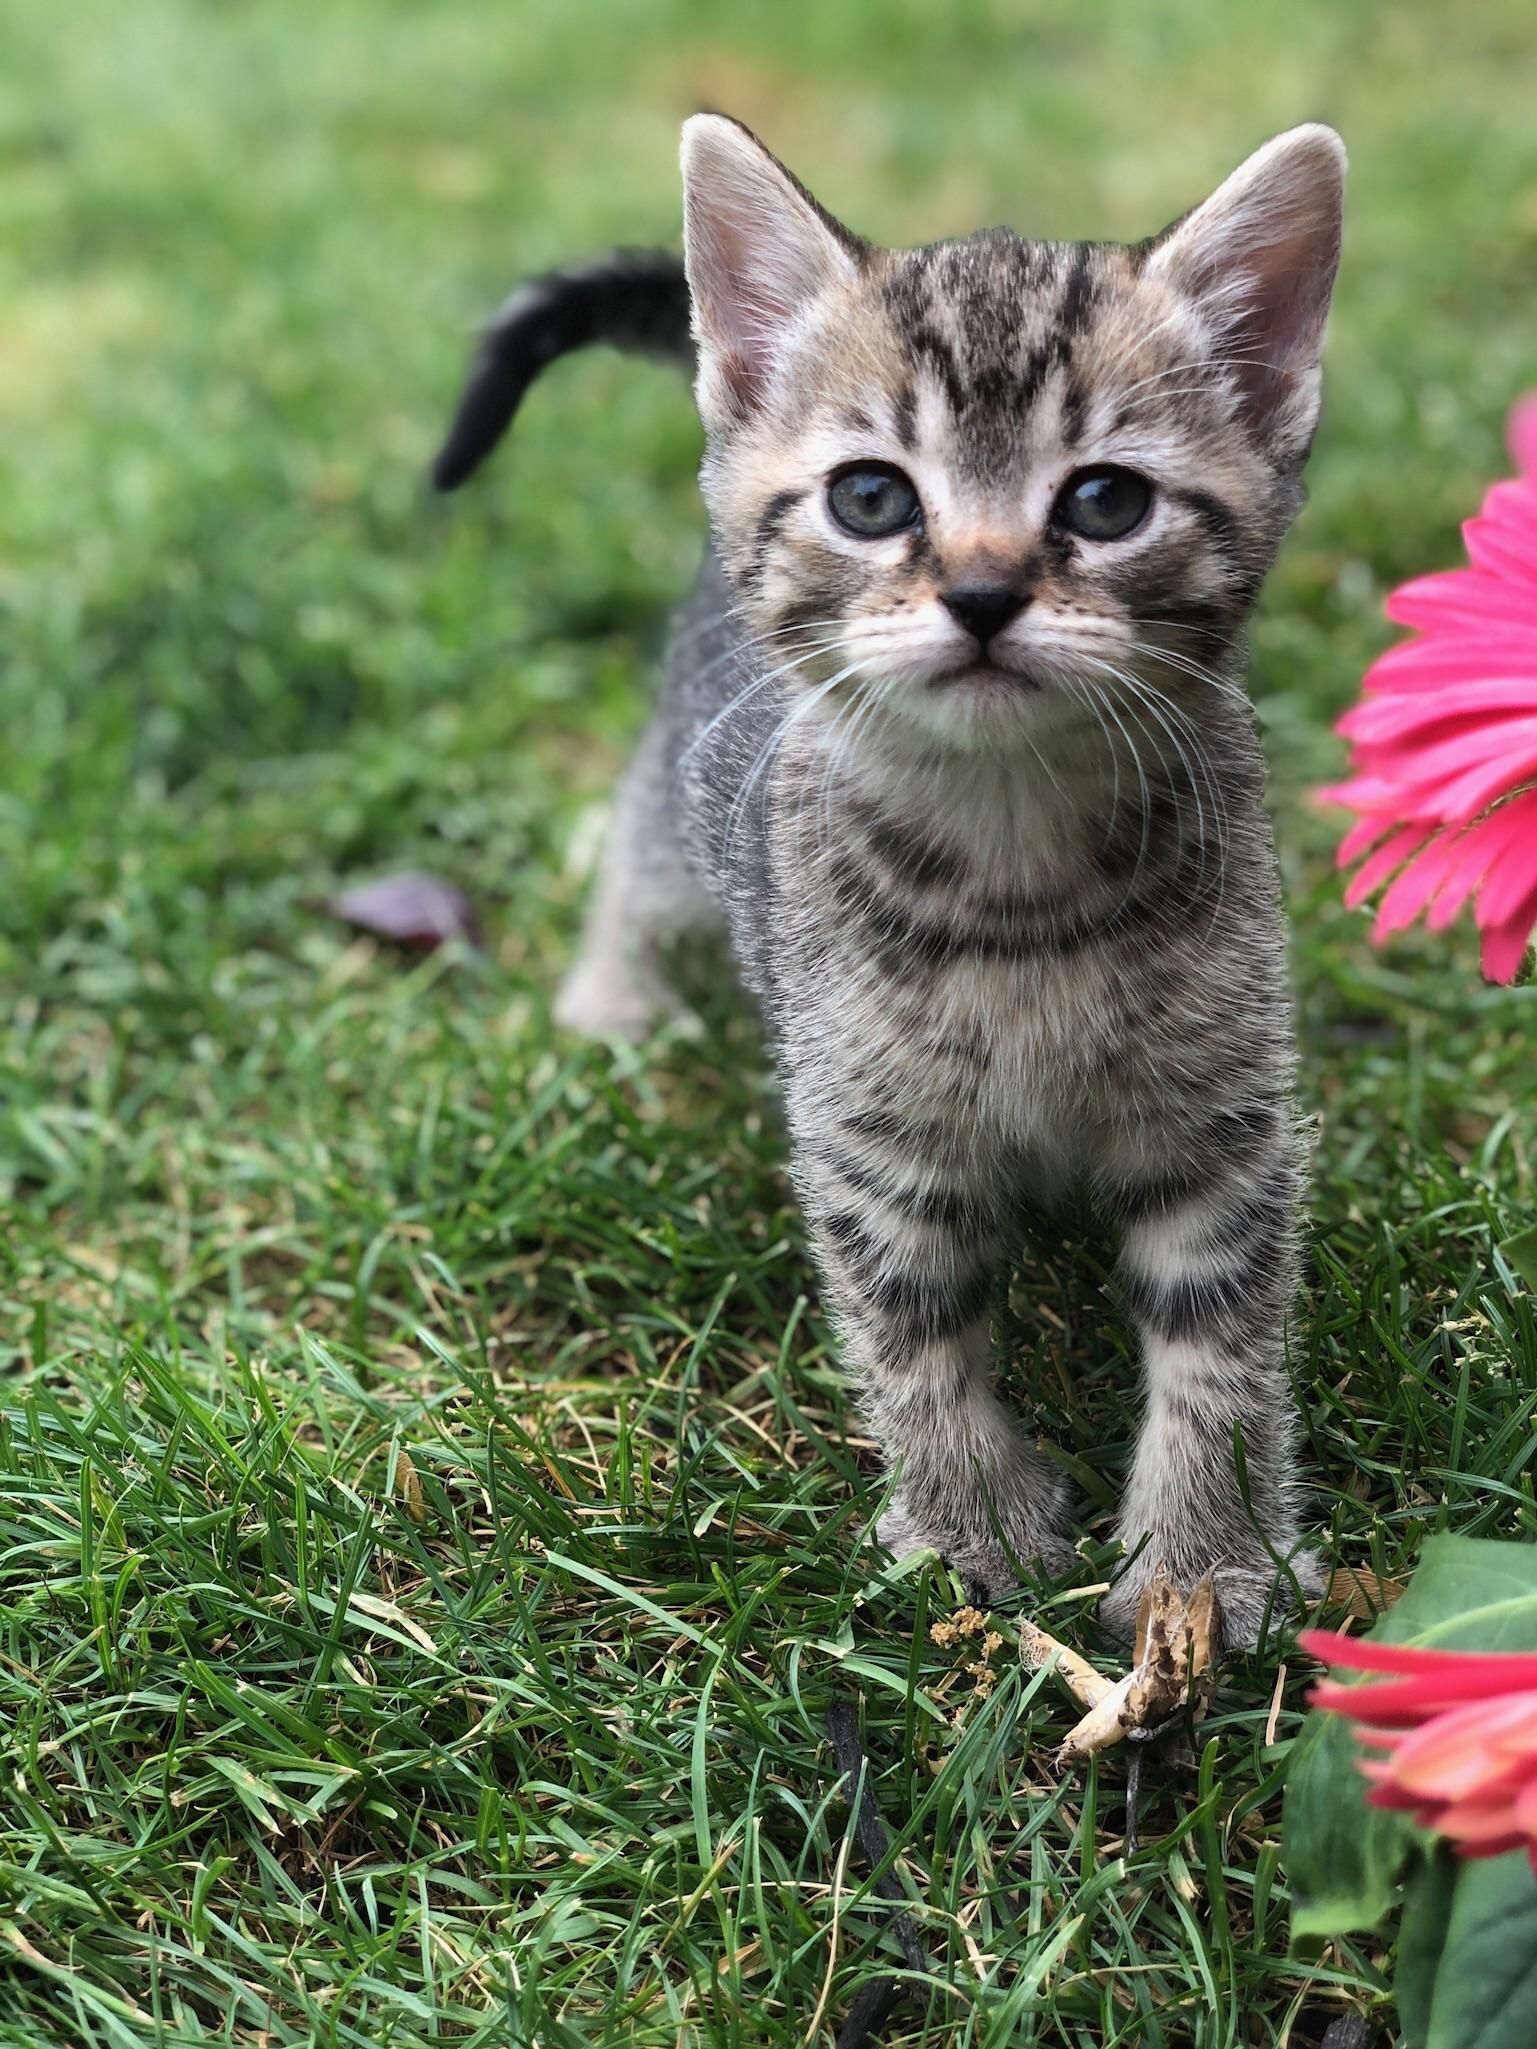 Let My Kitten Outside Today Https Ift Tt 2lhurvg Cute Puppies Cats Animals Chien Chat Chien Petit Chien